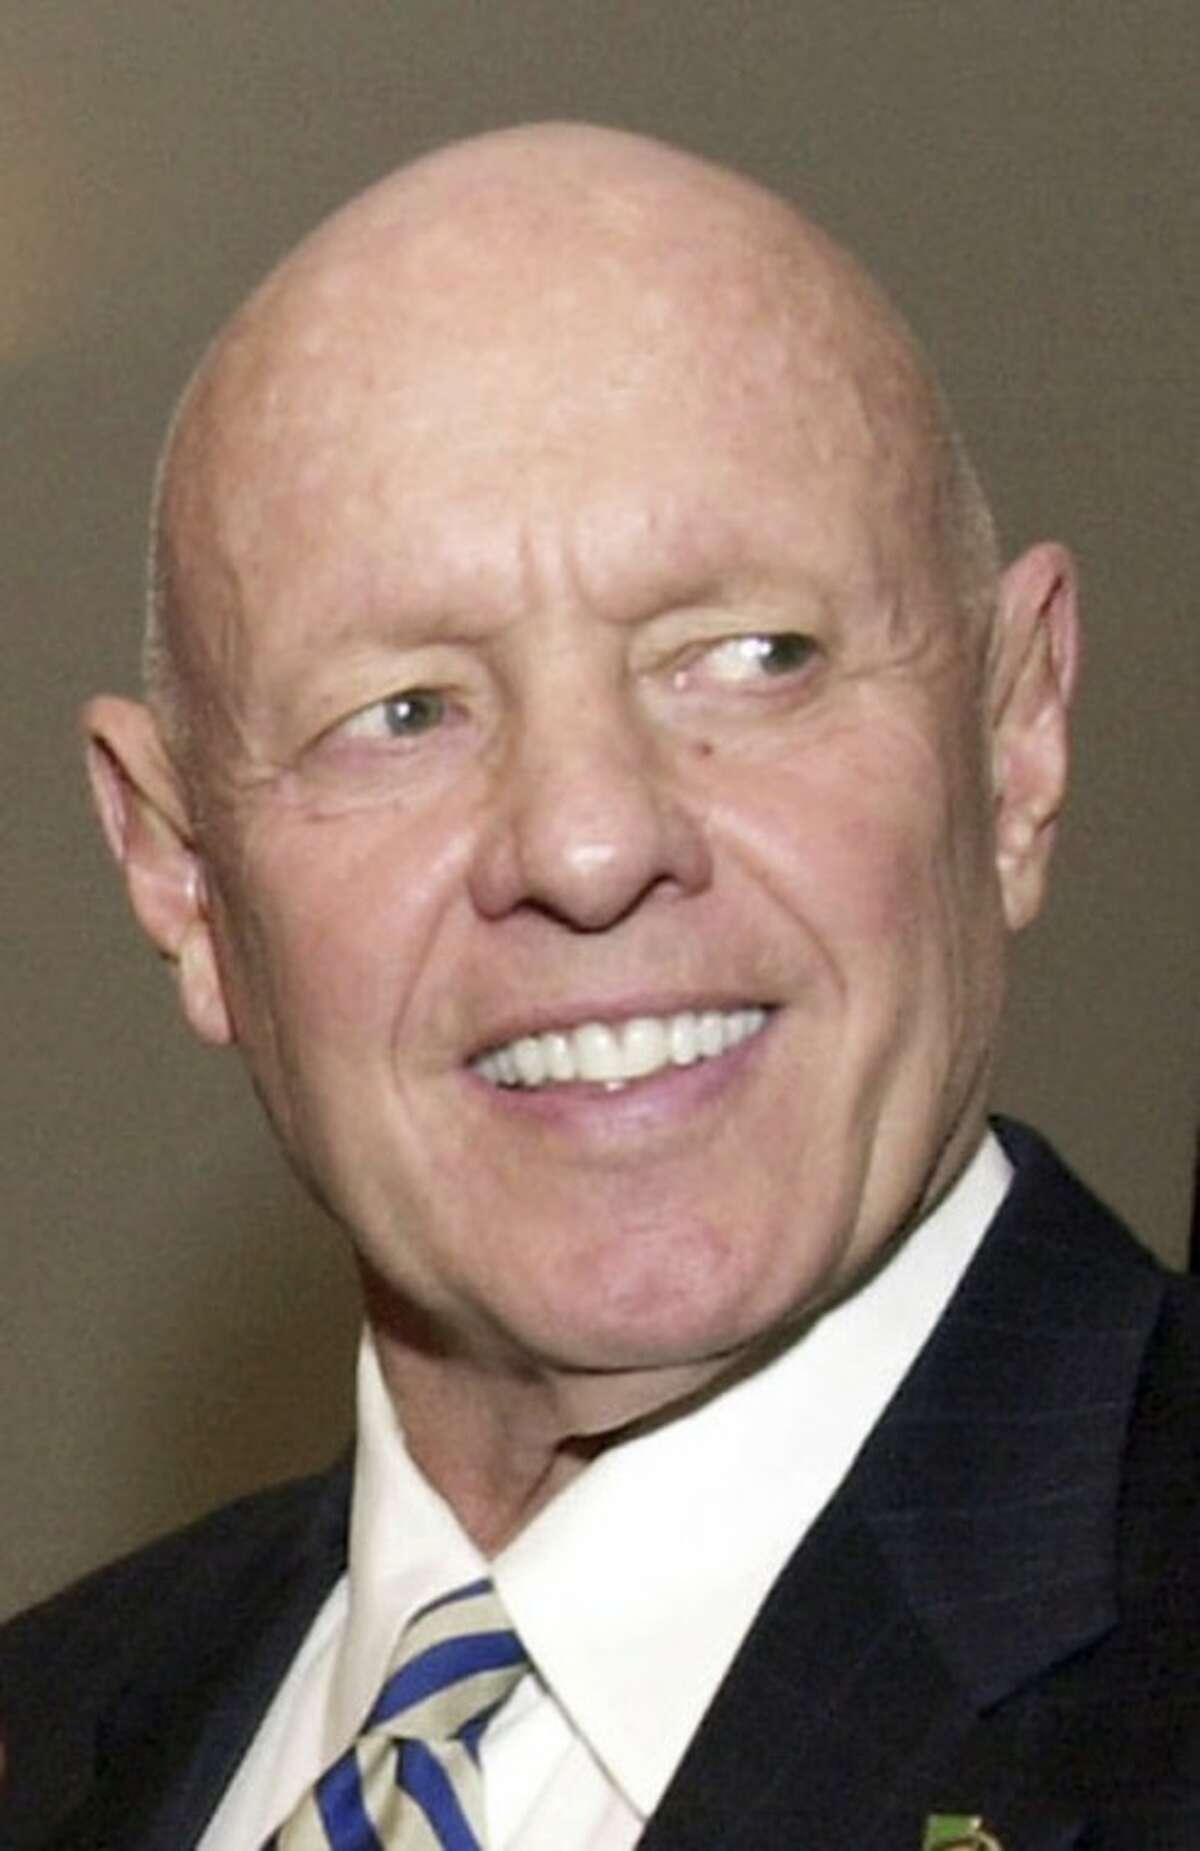 """FILE - This Feb. 25, 2003 file photo shows Dr. Stephen R. Covey at a training session at Georgia State University in Atlanta. Covey, the motivational speaker best known for the book """"The Seven Habits of Highly Effective People,"""" died Monday, July 16, 2012, in Idaho three months after a serious bicycle accident in Utah. He was 79. (AP Photo/Ric Feld, File)"""